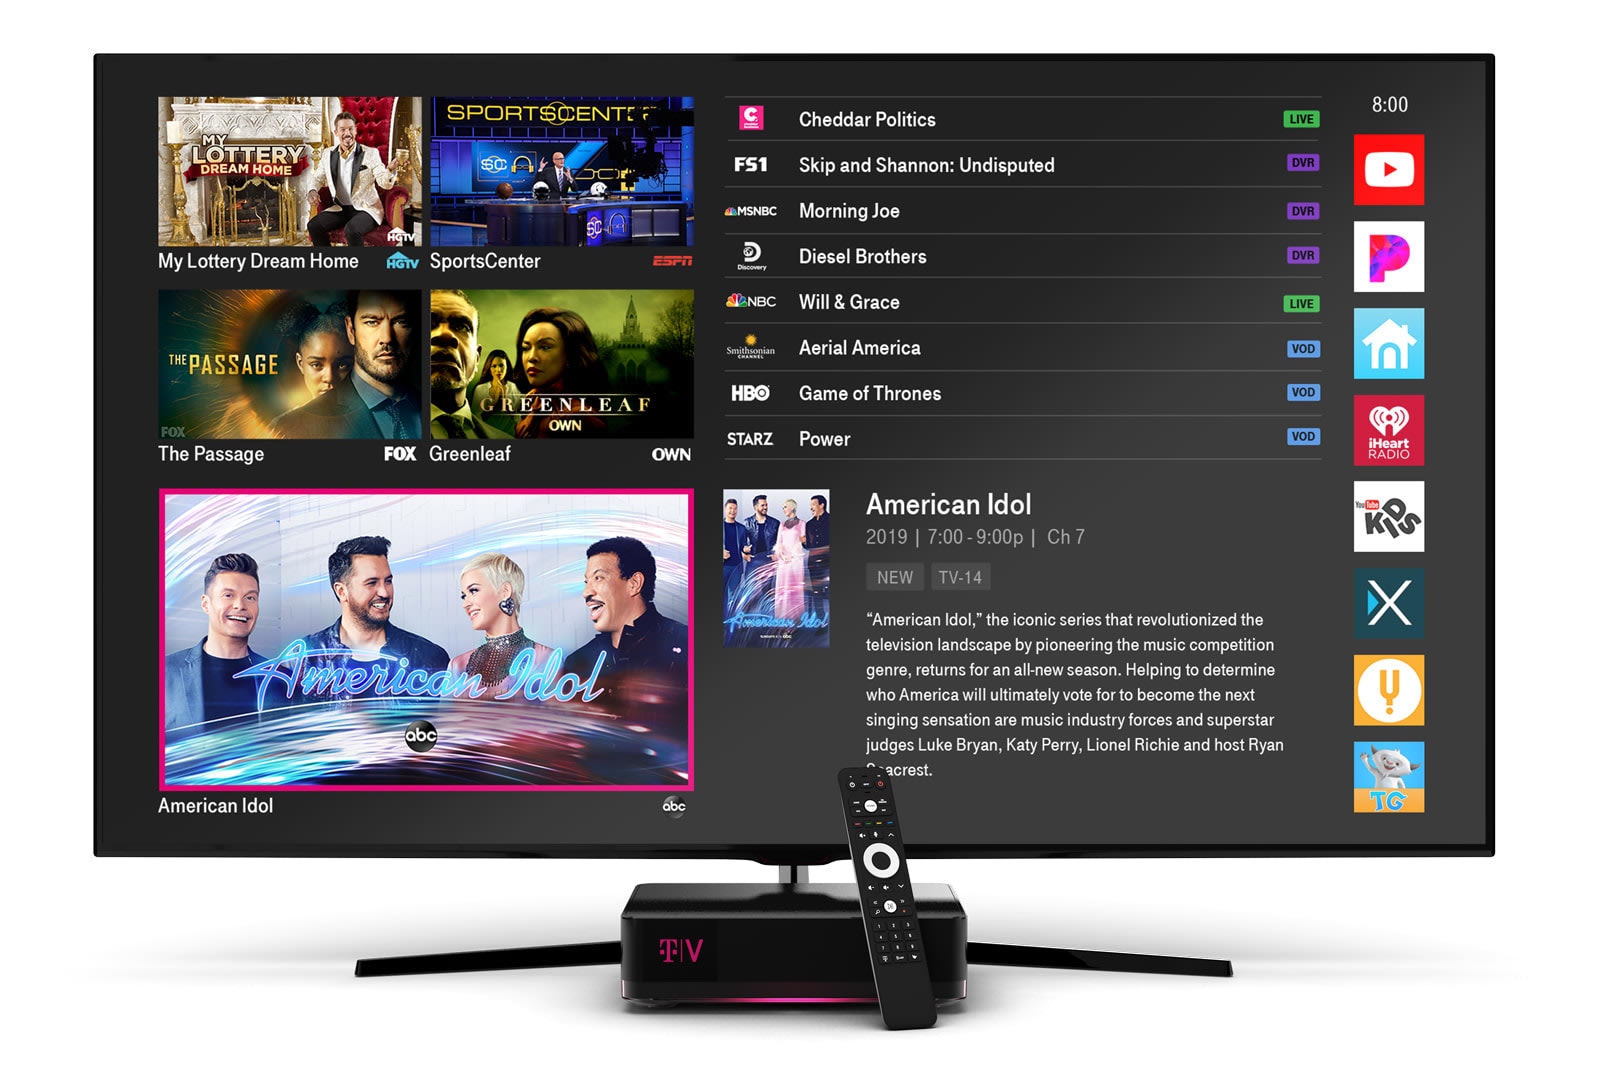 T-Mobile relaunches its TV service with an AI viewing guide (updated)